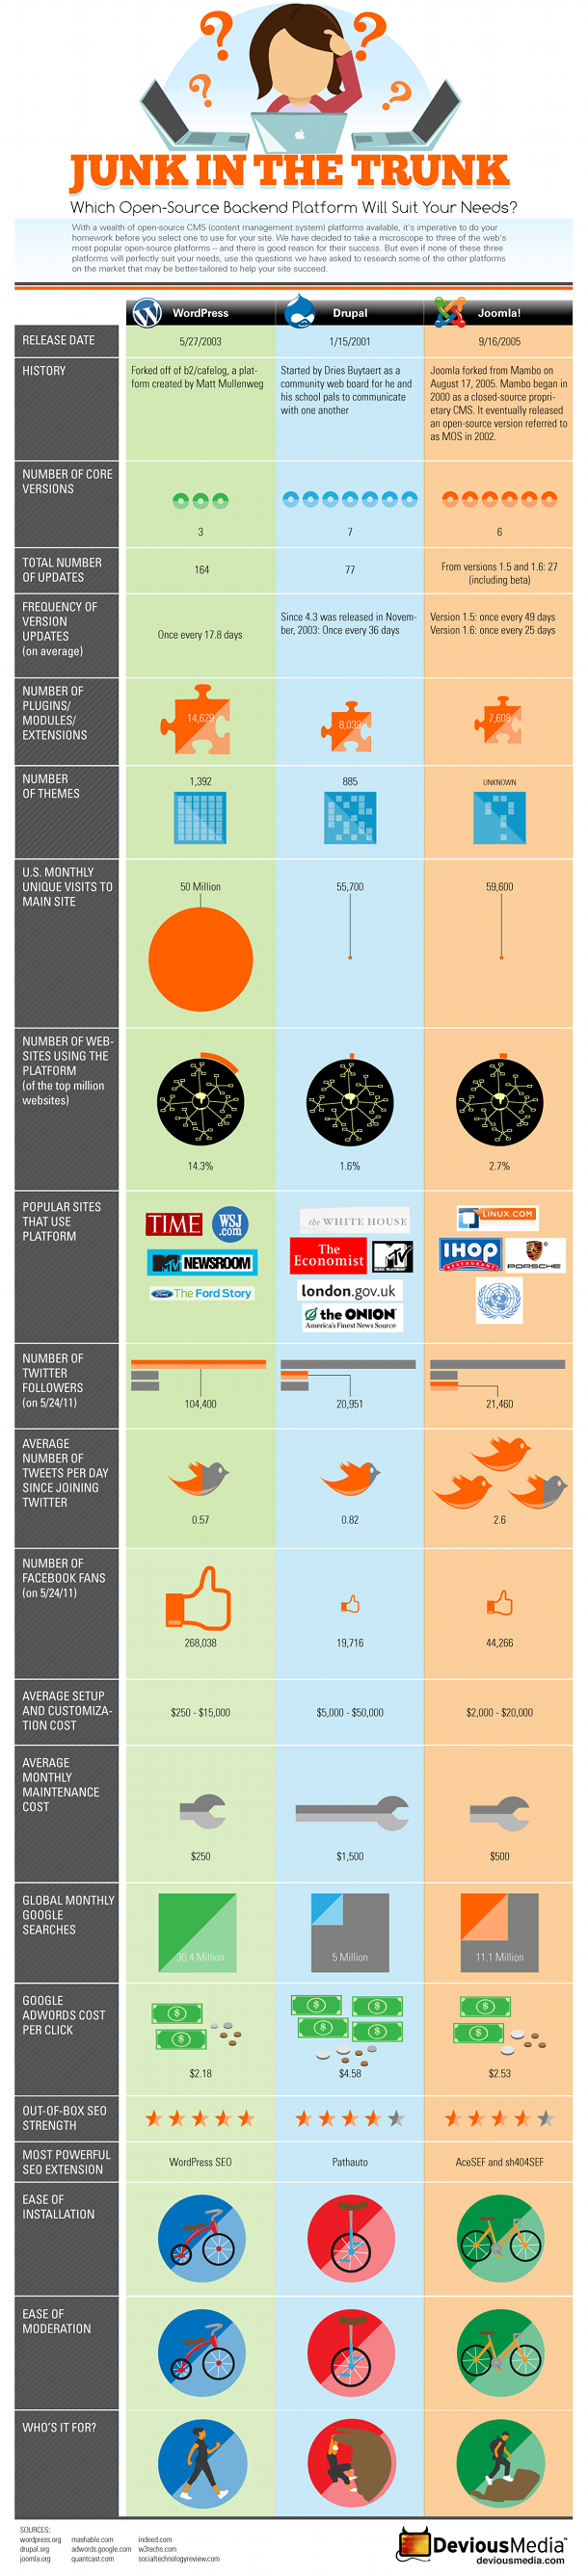 Wordpress vs Drupal vs Joomla - infographic